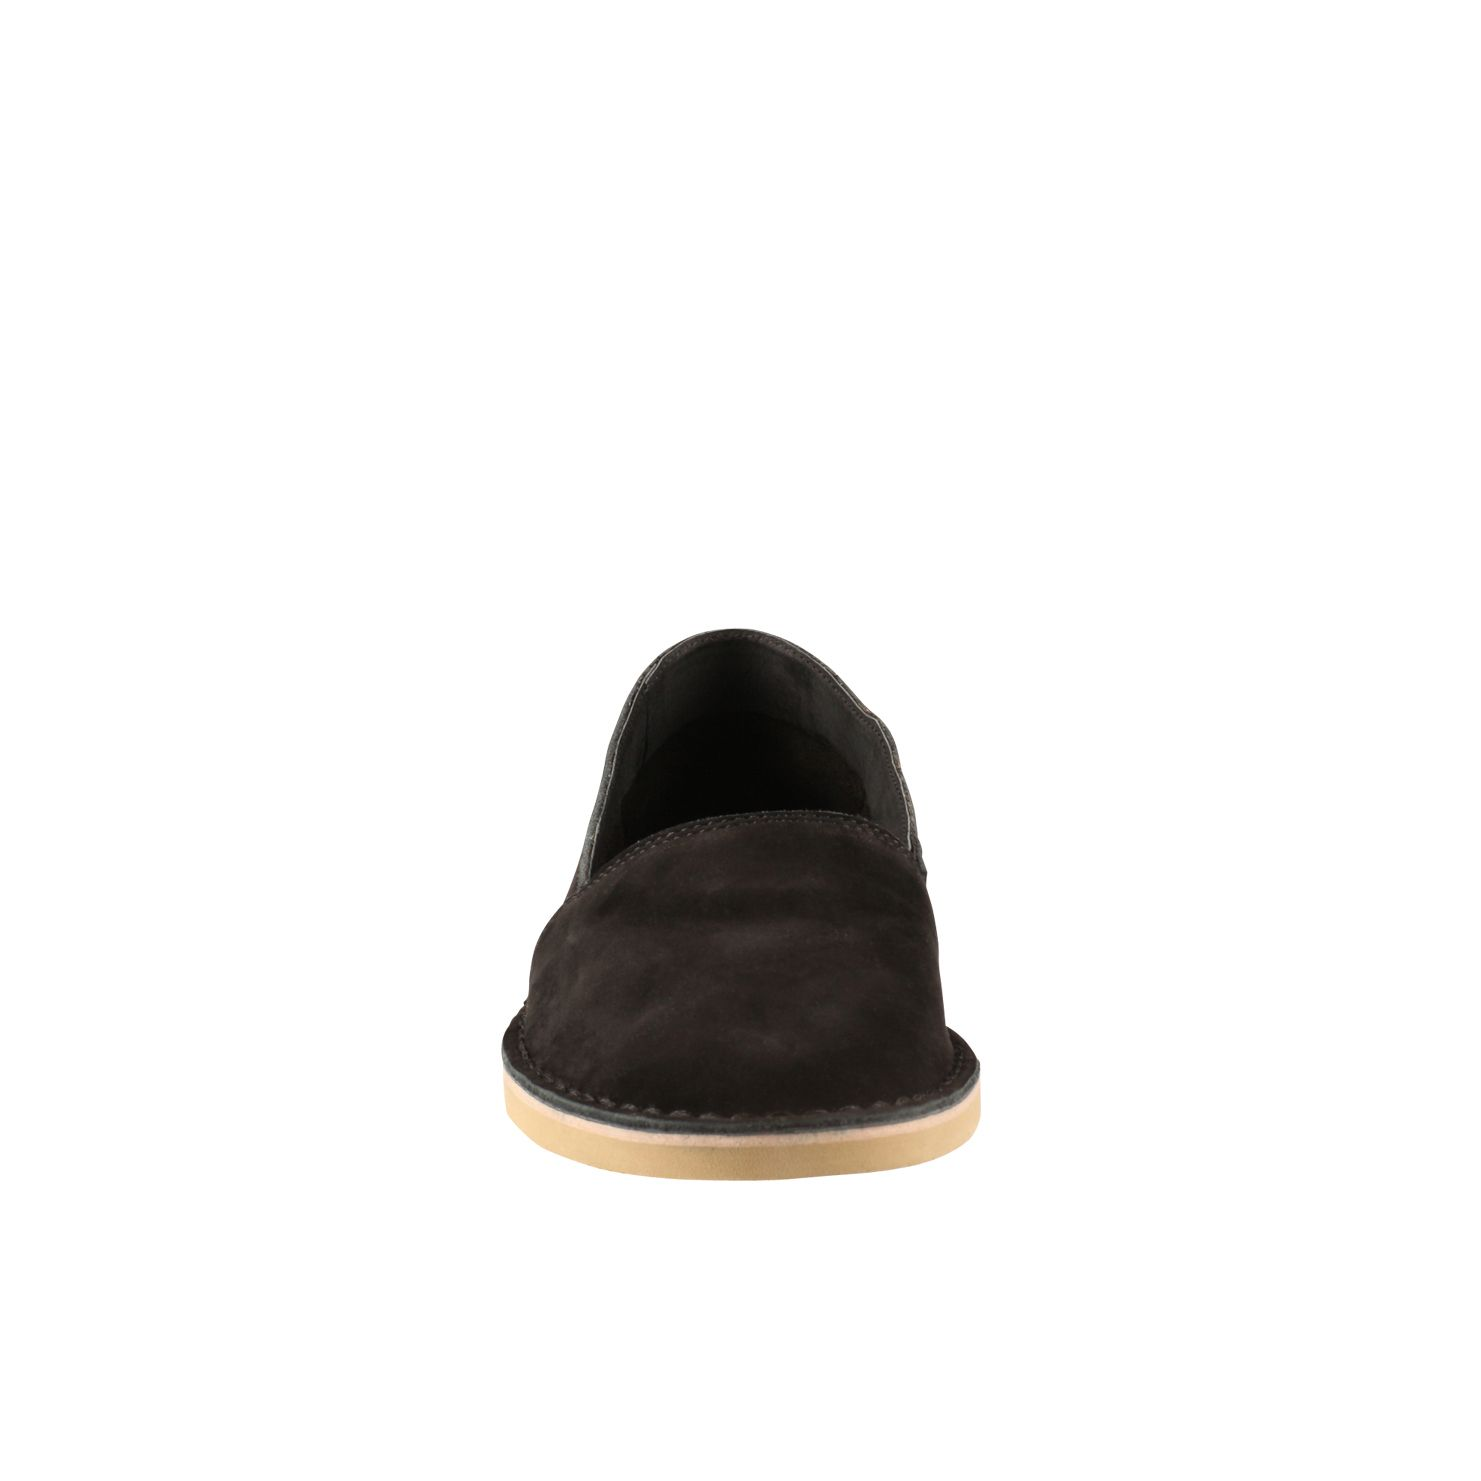 Archi slip on espadrille shoes